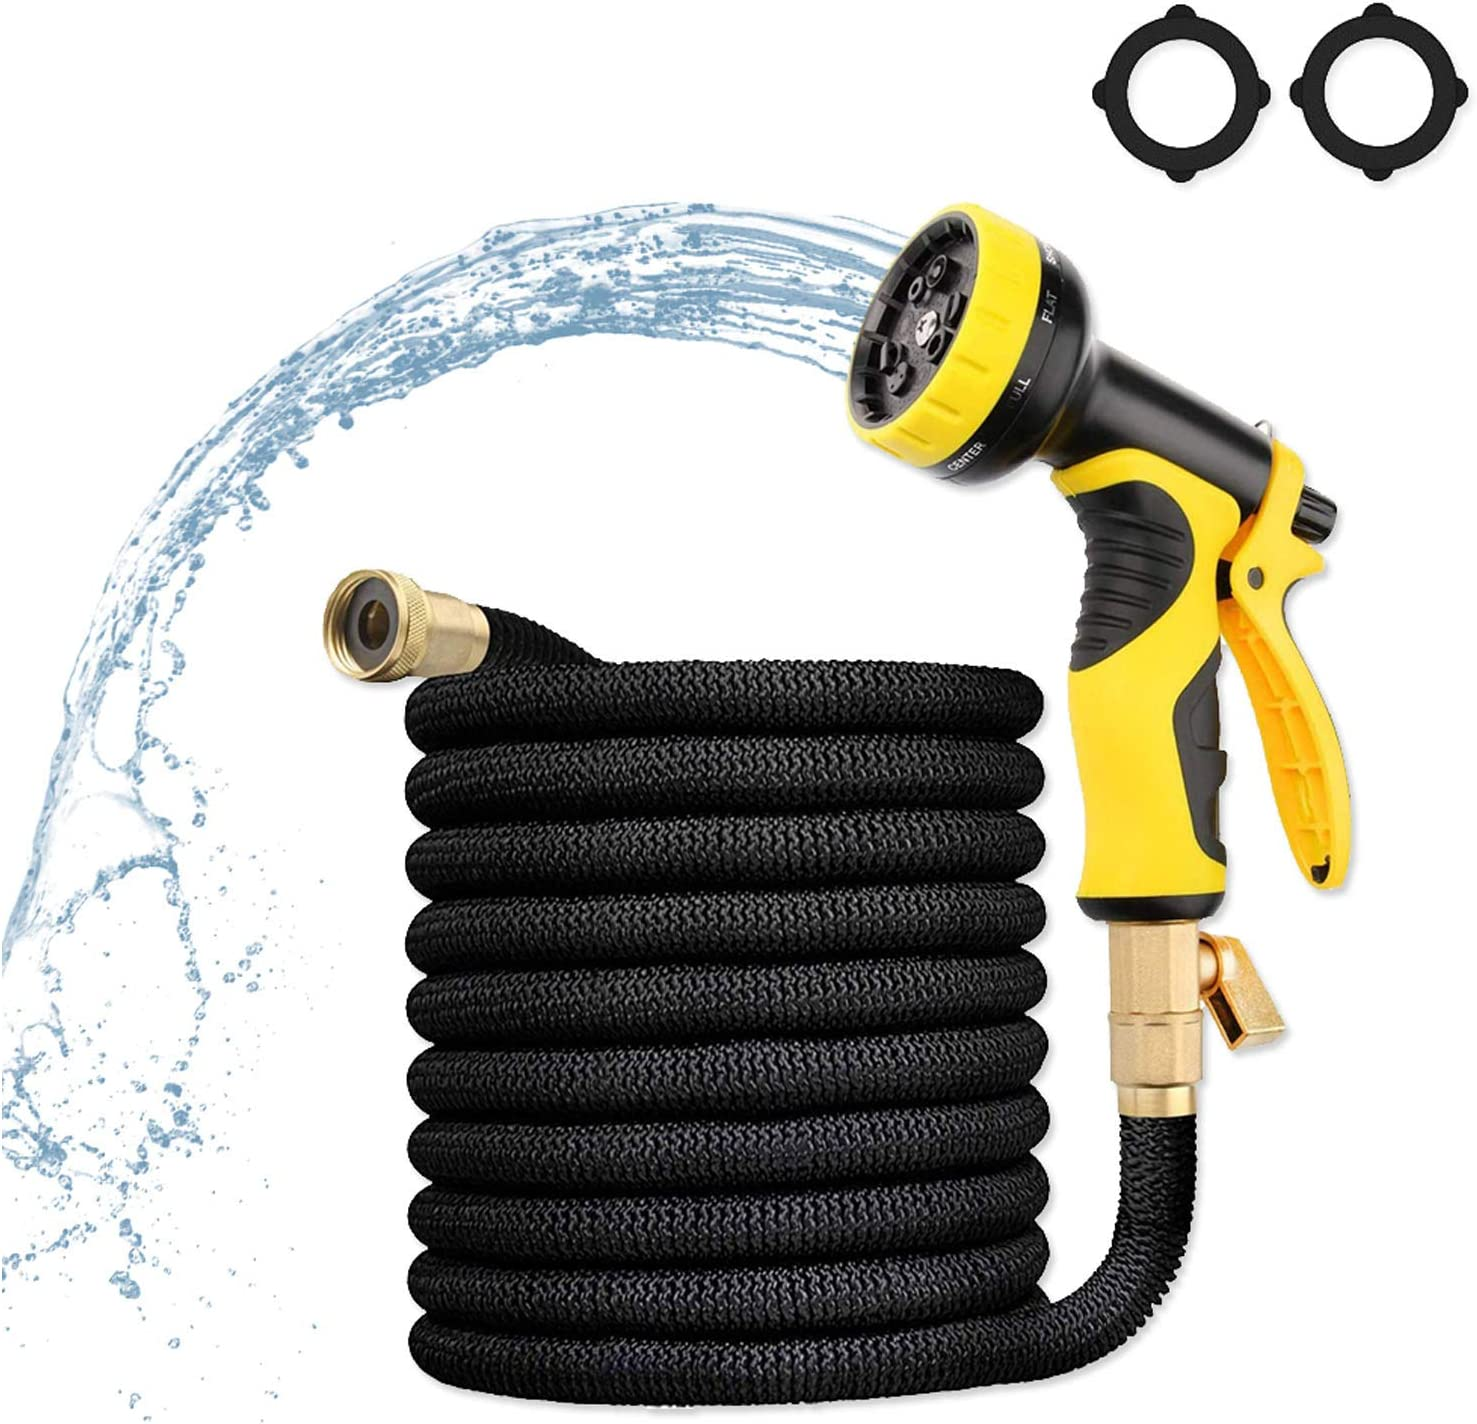 50FT EXPANDABLE GARDEN HOSE HIGH PRESSURE WATER HOSE 9 FUNCTION NOZZLE AND 3 | 4 SOLID BRASS CONNECTOR 3750D SUPER DURABLE FLEXIBLE GARDEN HOSE FOR WATERING CAR BEAUTY CLEANING